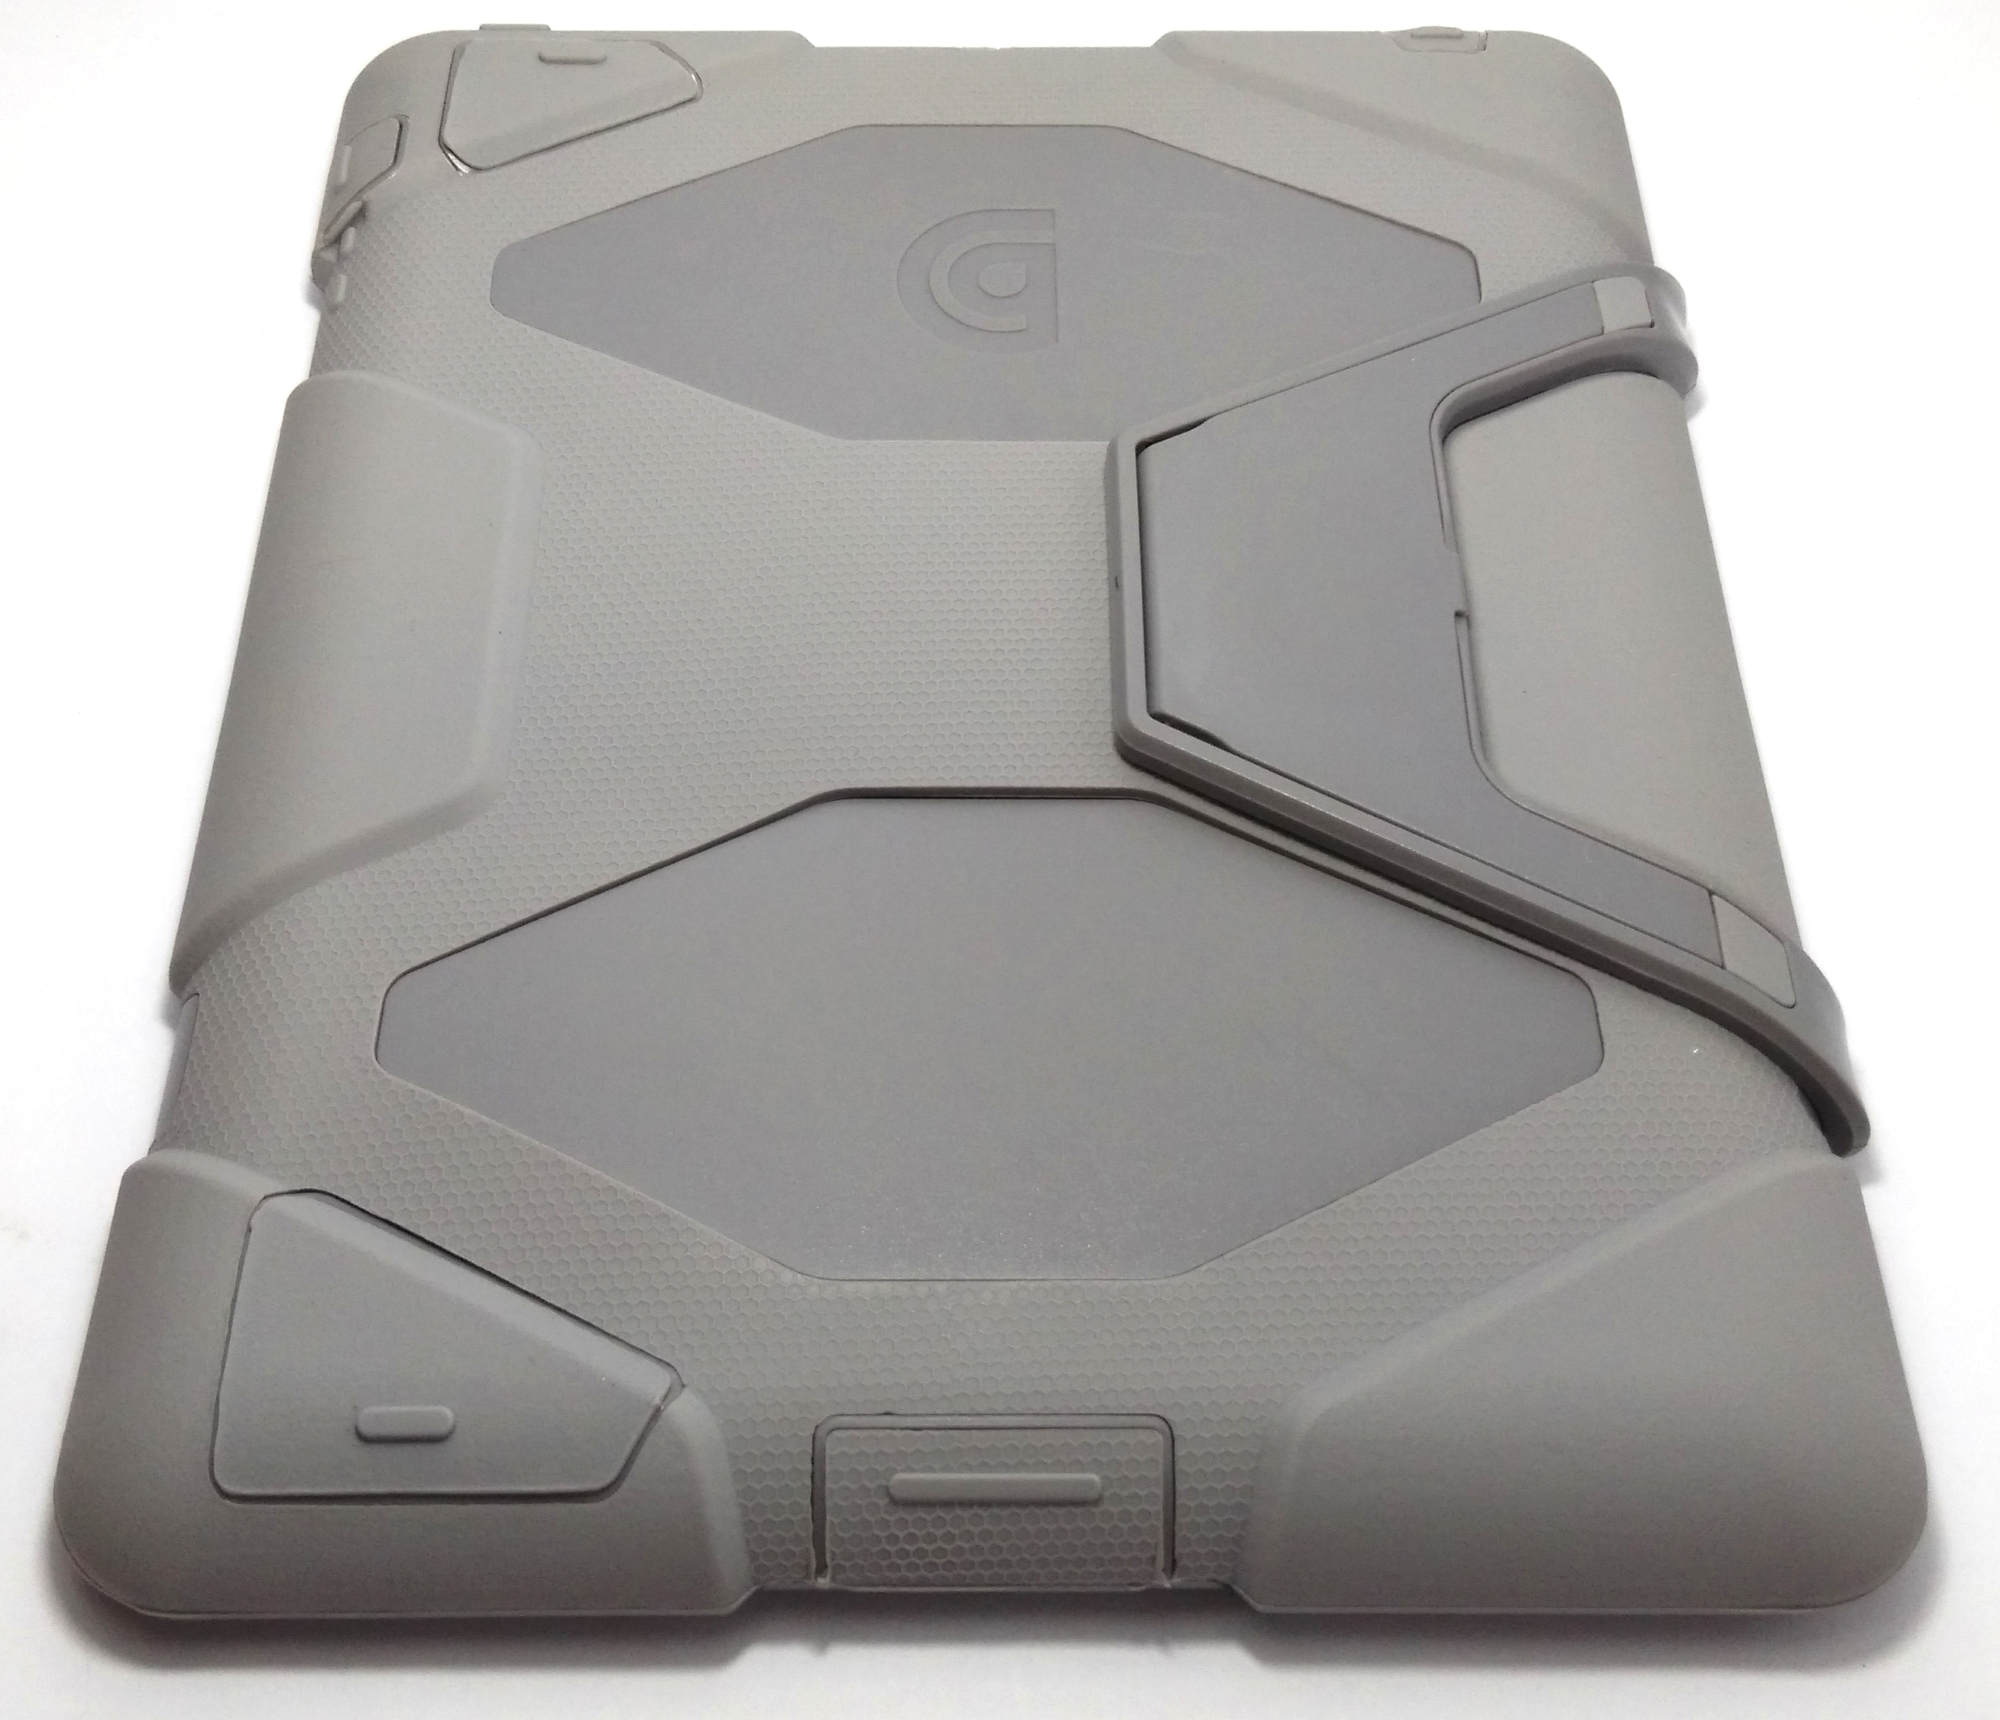 Heavy Duty Shockproof Case for iPad 2/3/4 (Grey)